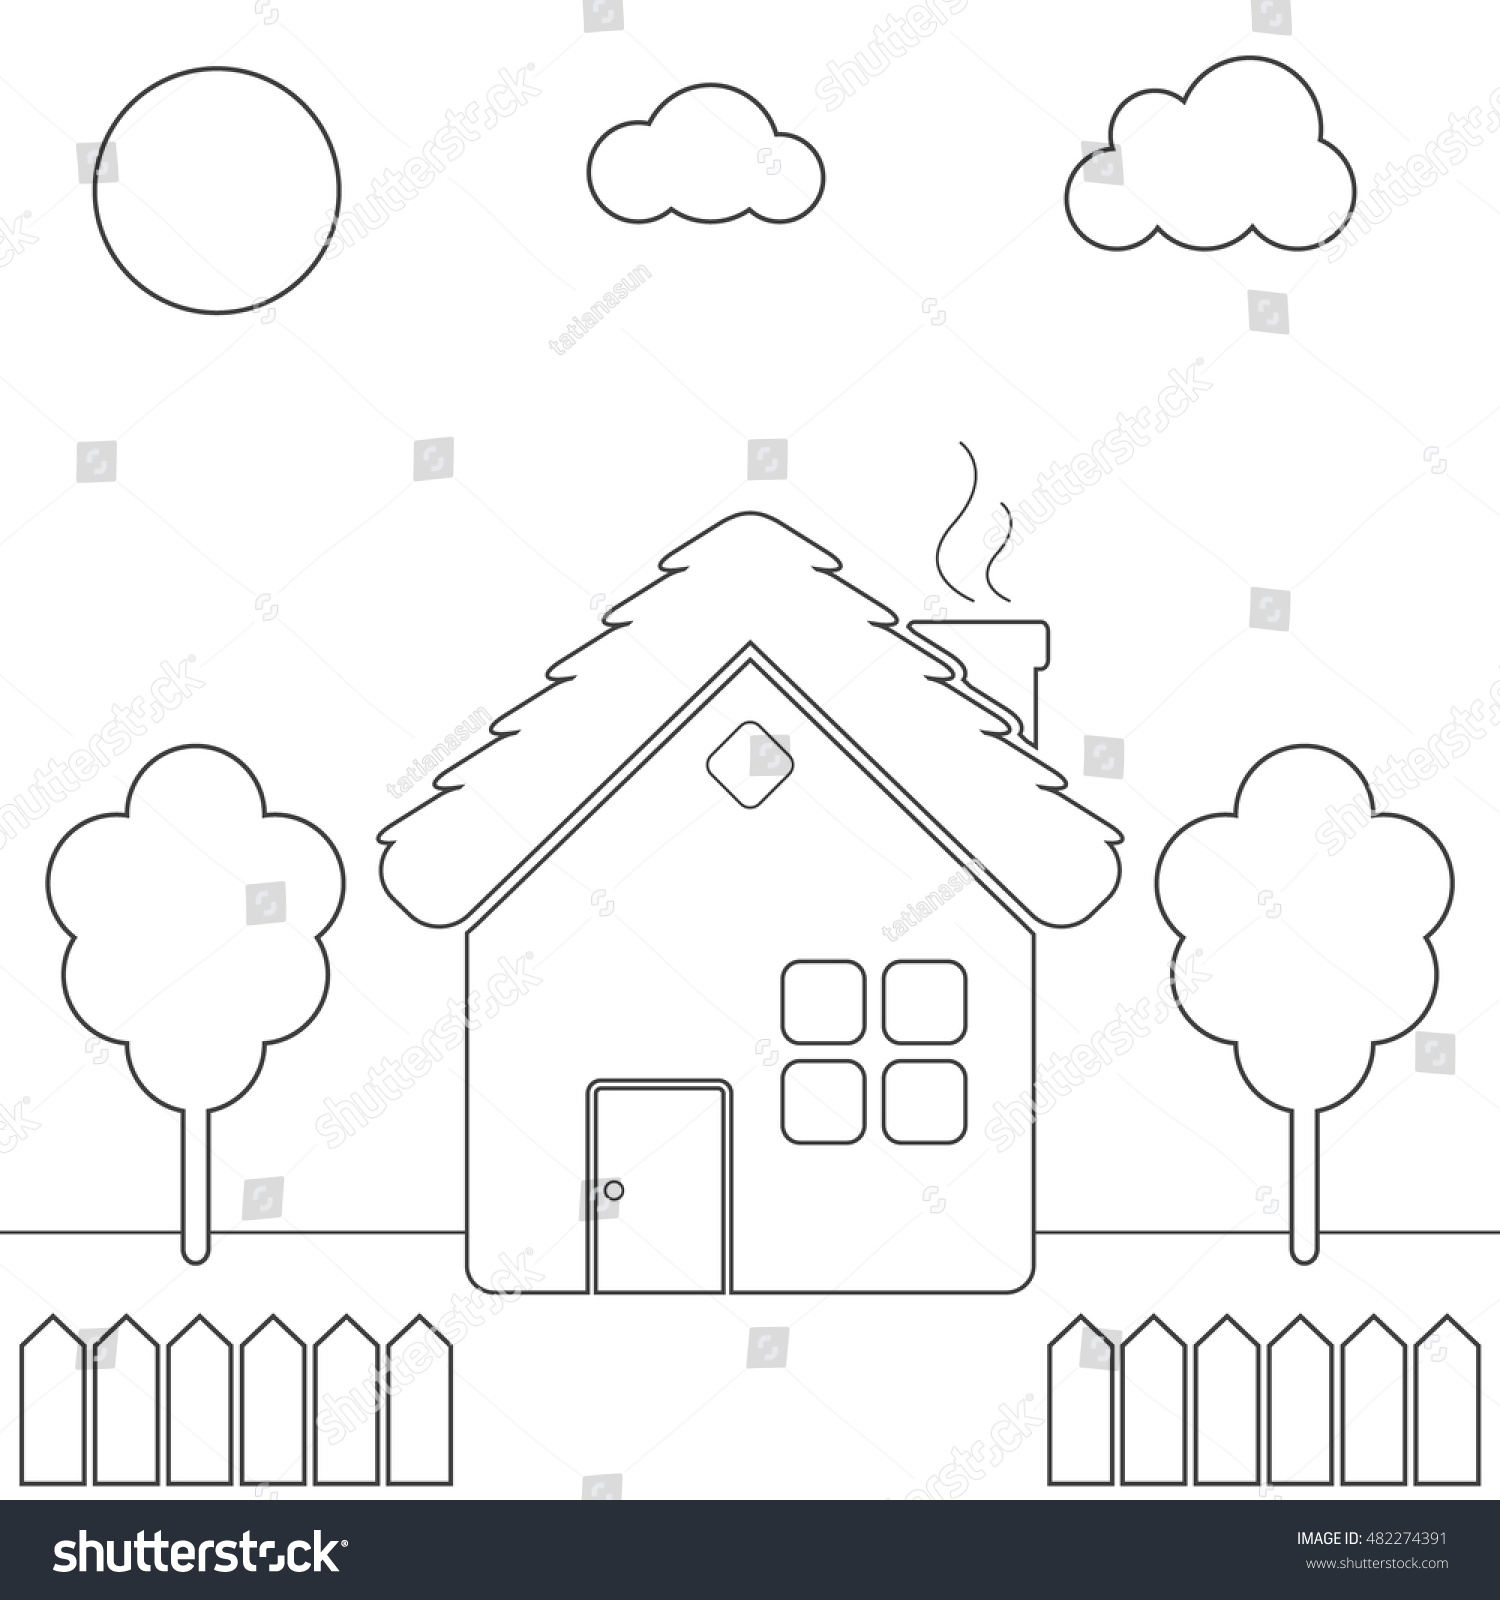 Childrens coloring house - Children S Coloring Page With Country House Yard Fence Tree Sky Coloring